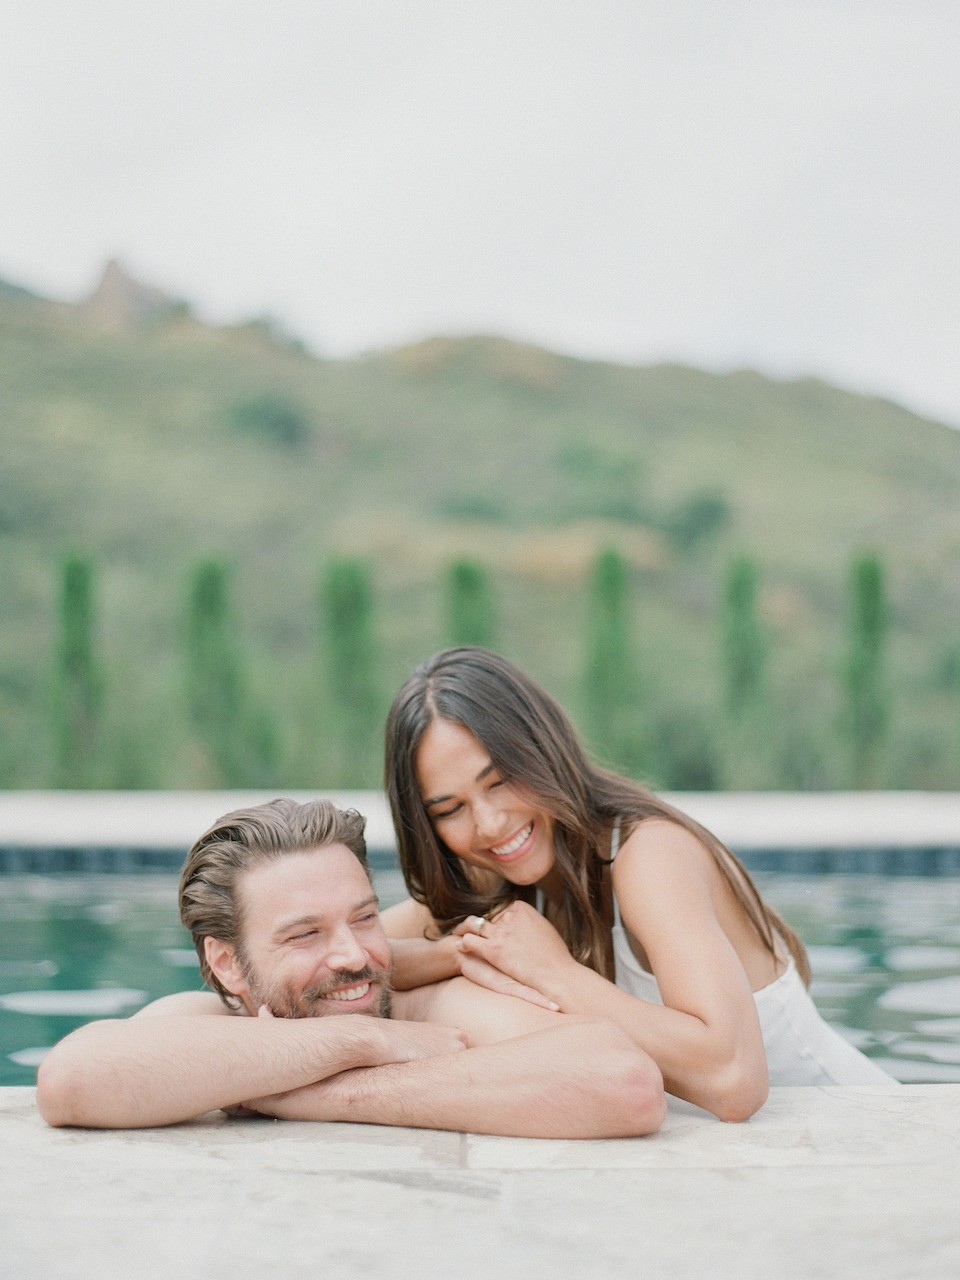 What About a Staycation When Your Honeymoon is Canceled?